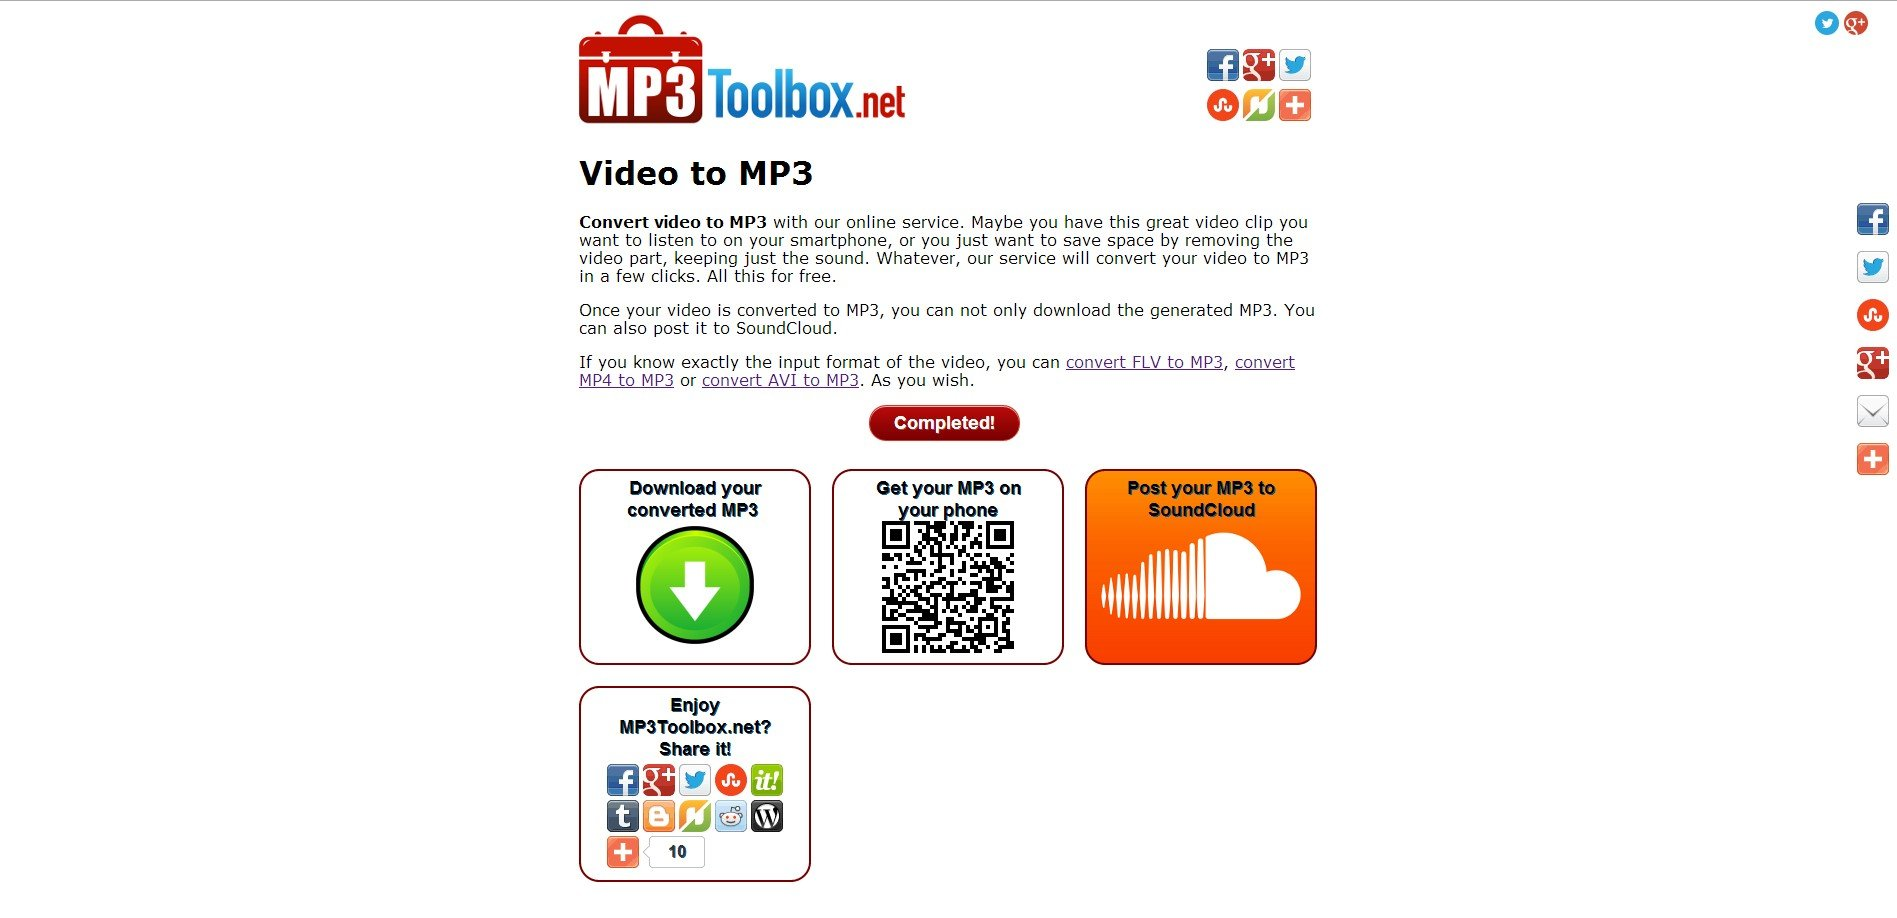 MP3Toolbox net Alternatives and Similar Websites and Apps